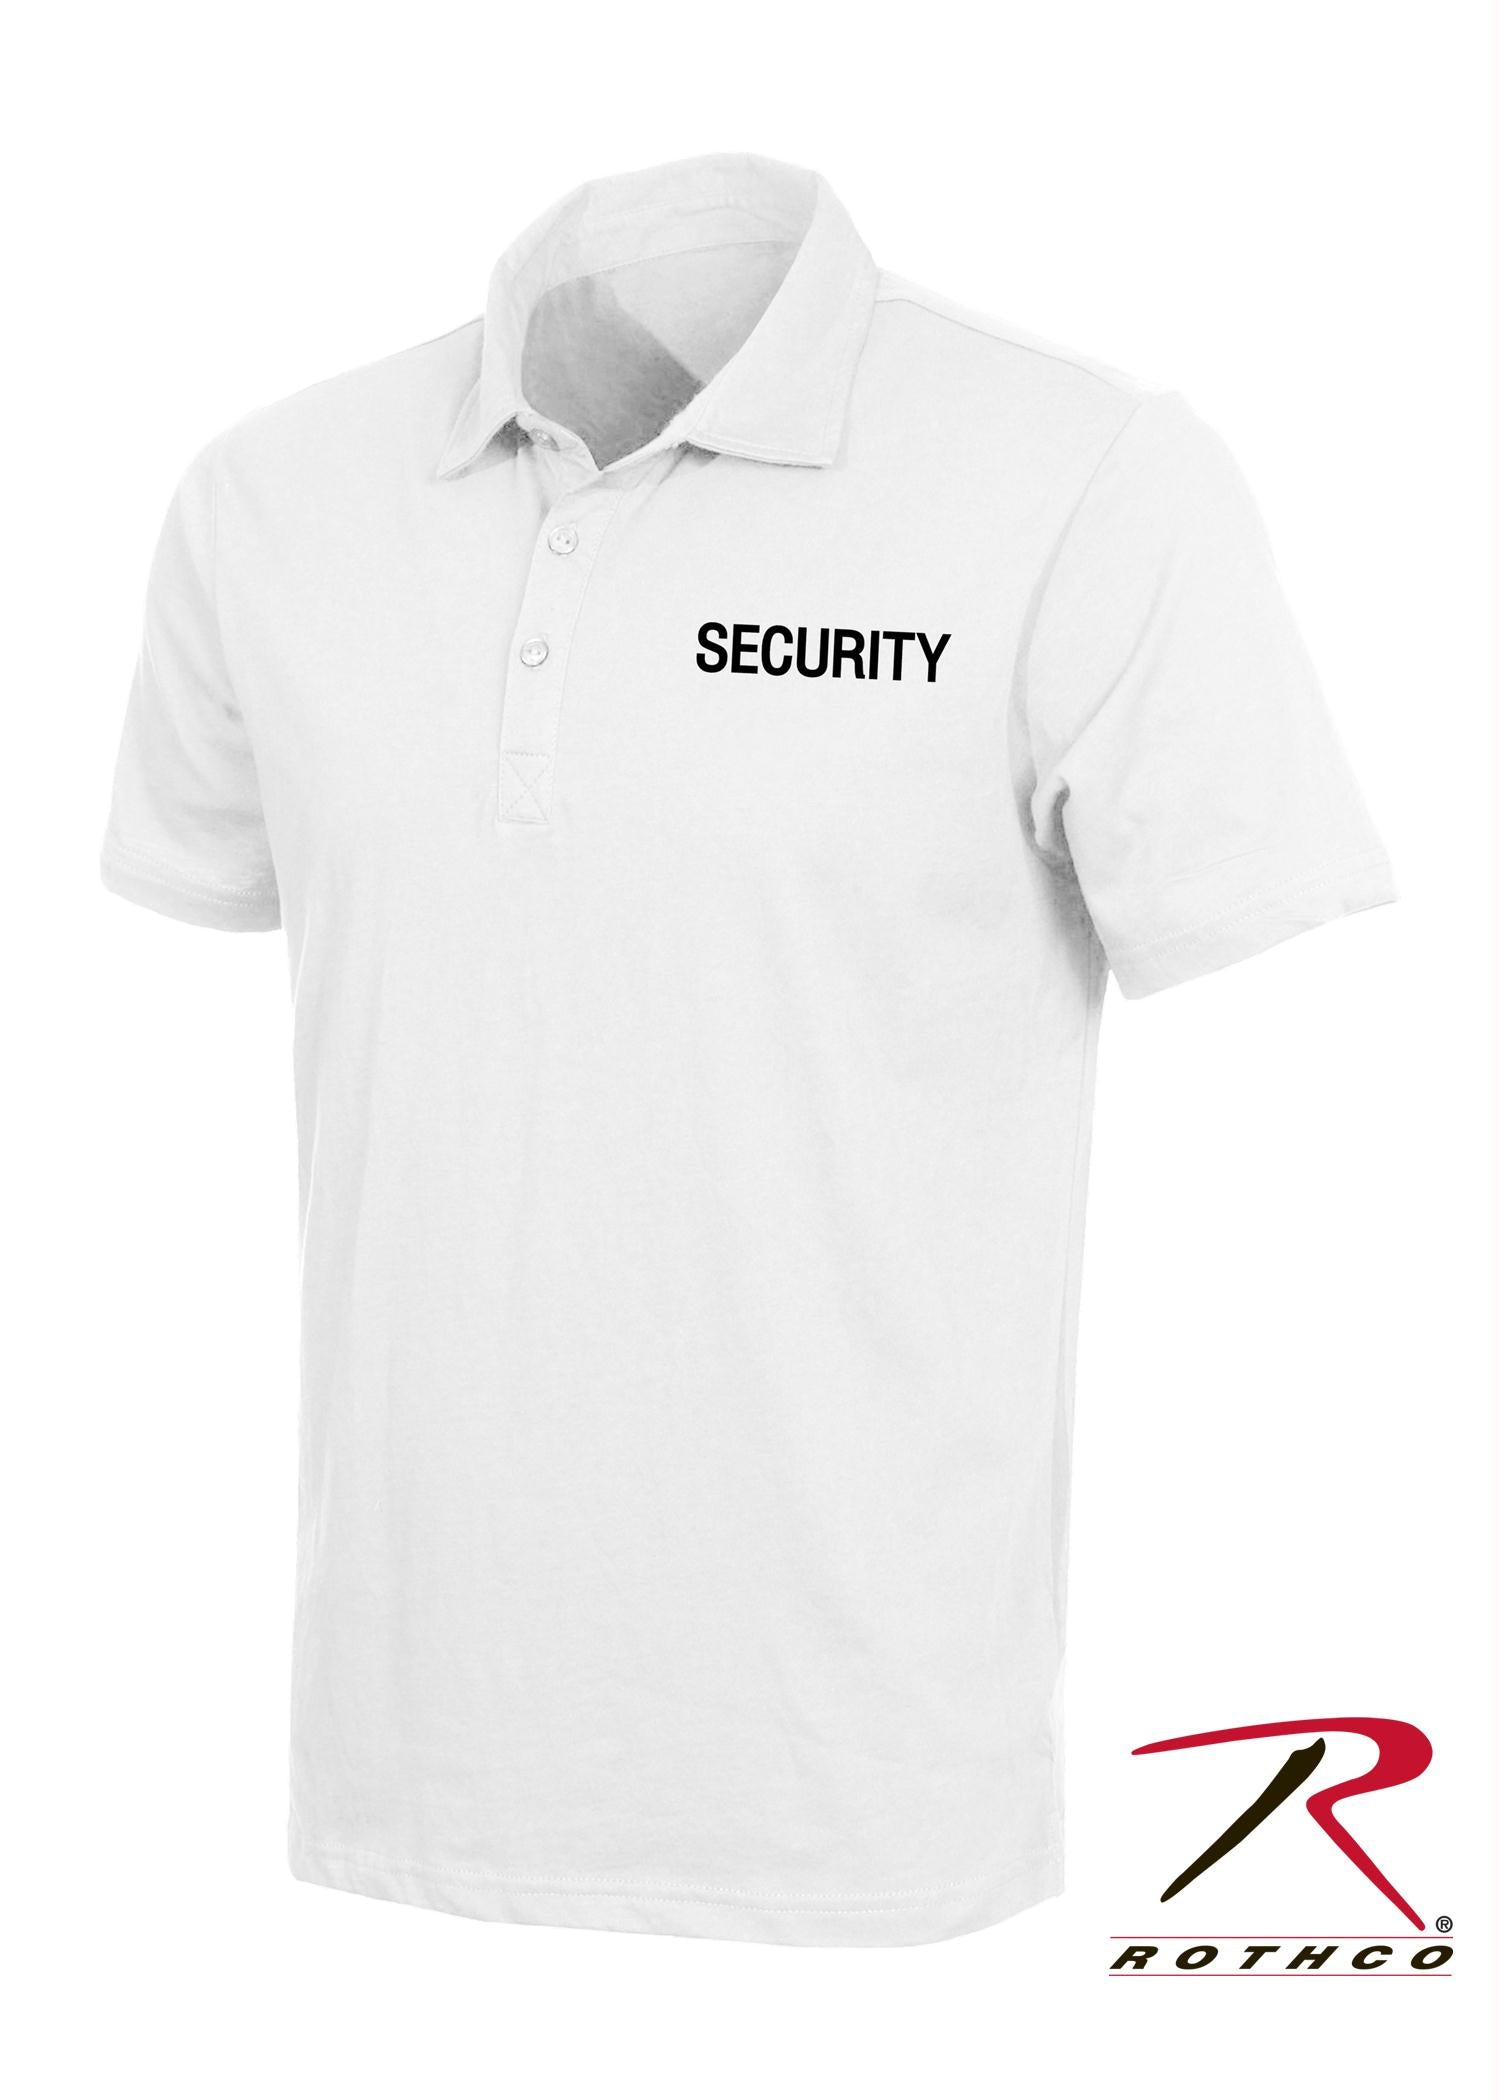 Rothco Law Enforcement Printed Polo Shirts - White / Security / S